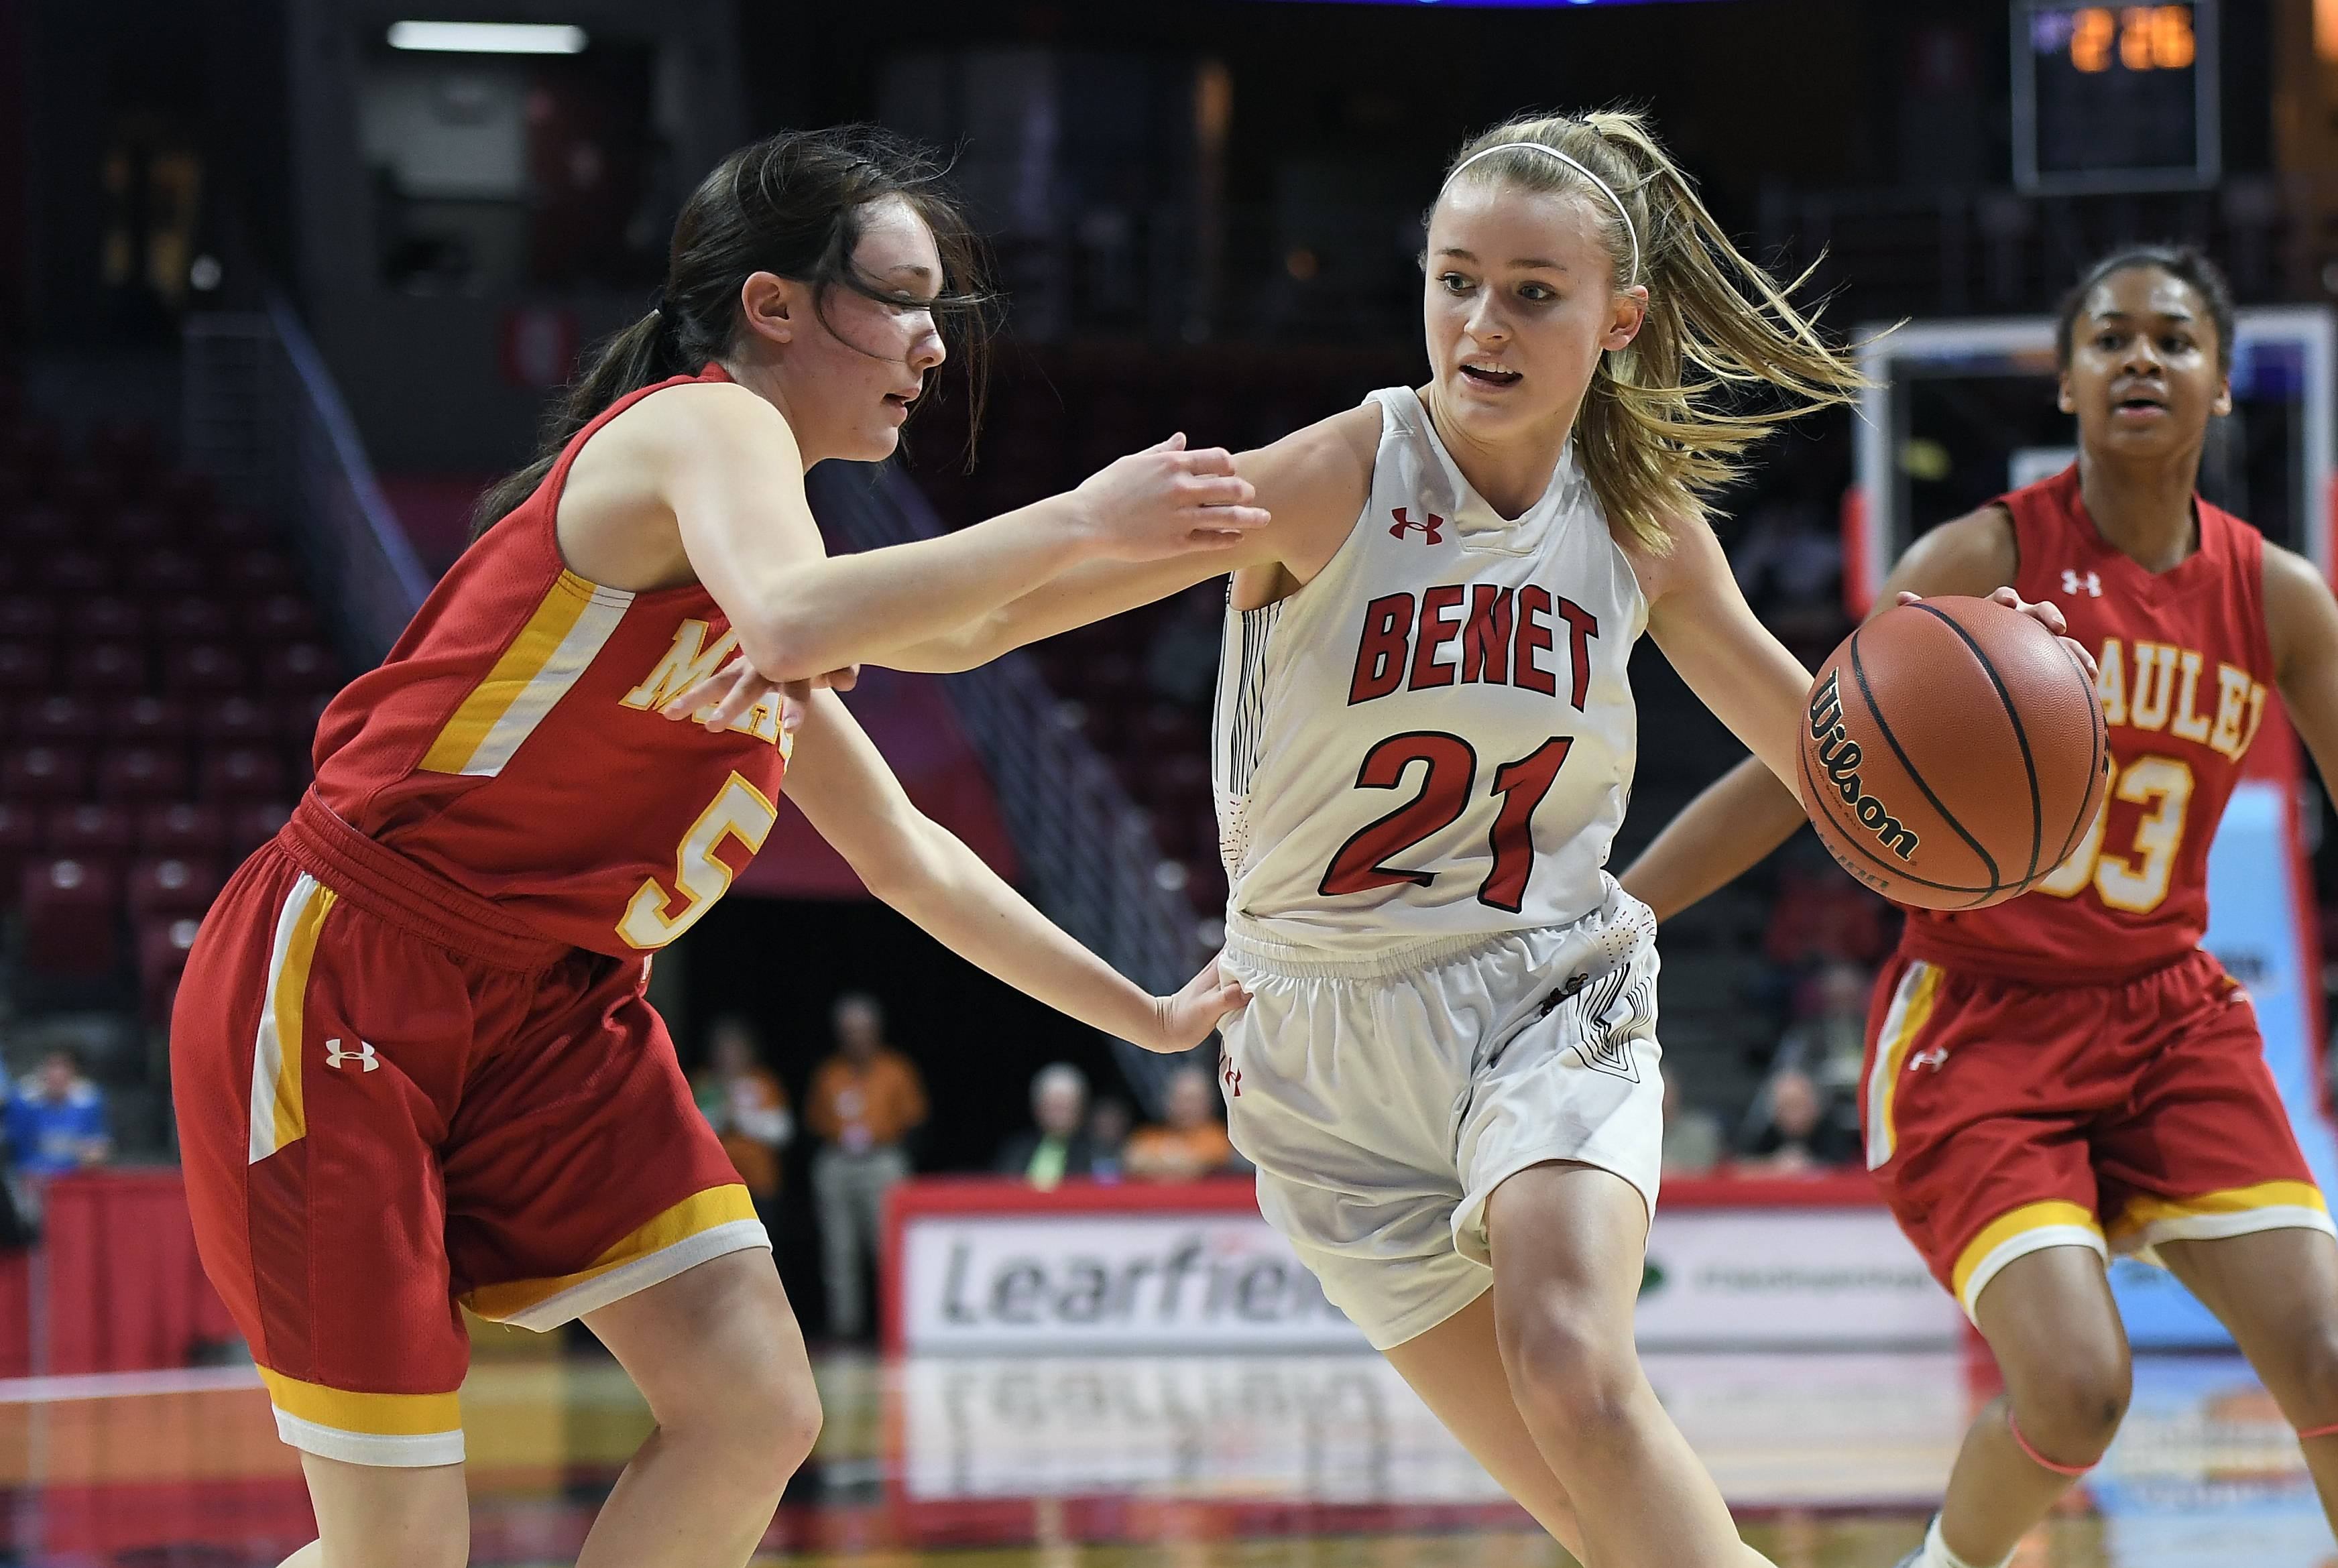 Benet Academy's Clara Prasse fights to drive around Mother McAuley's Nikki Murphy in the first quarter during IHSA girls state basketball Class 4A semifinals at Normal on Friday.